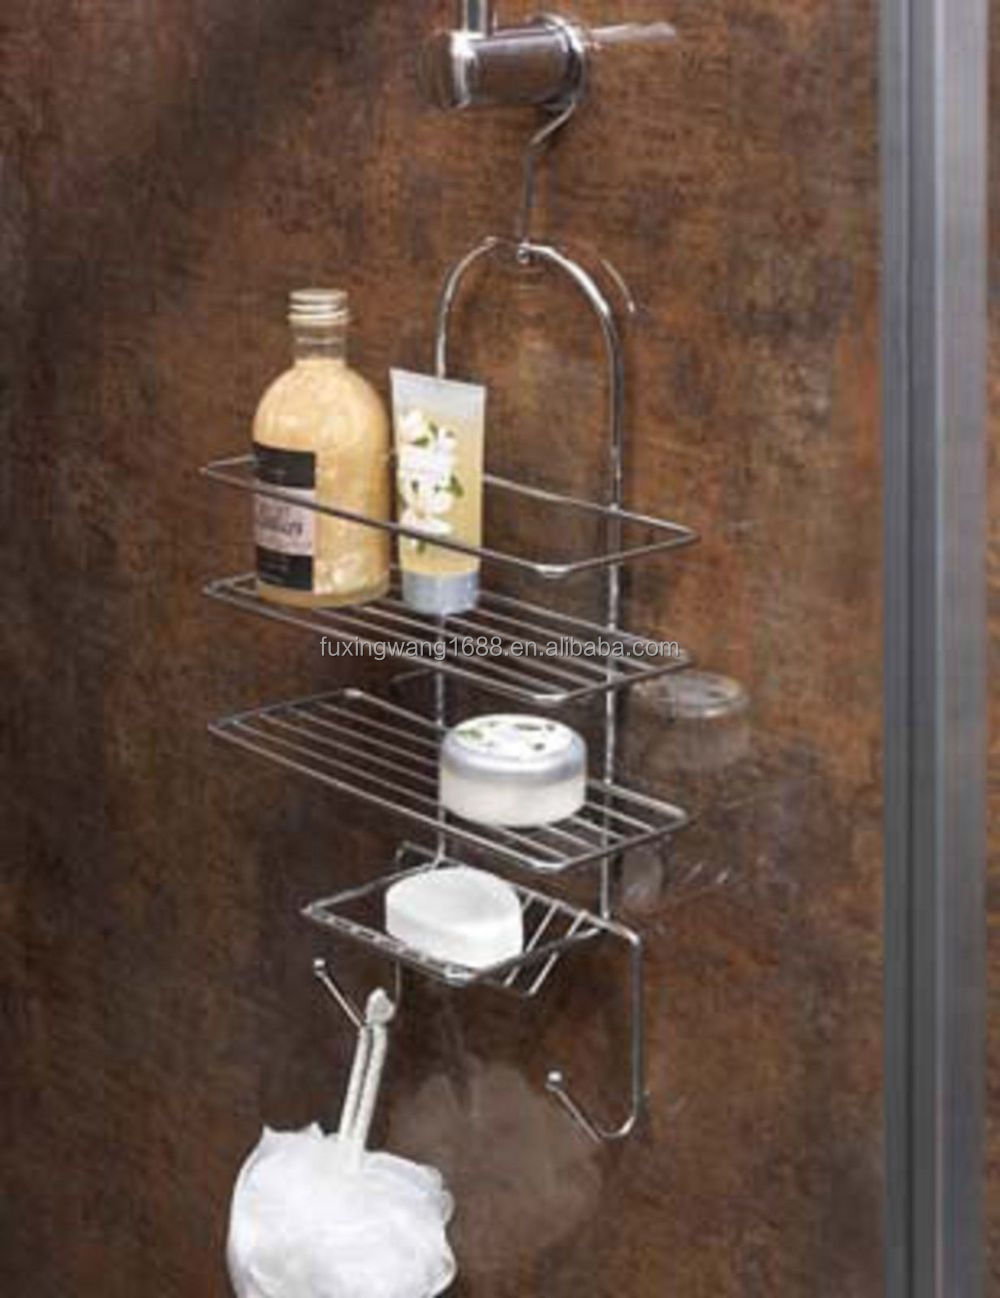 Shower Caddy Soap Storage Rack Organiser Holder Chrome With Hook ...